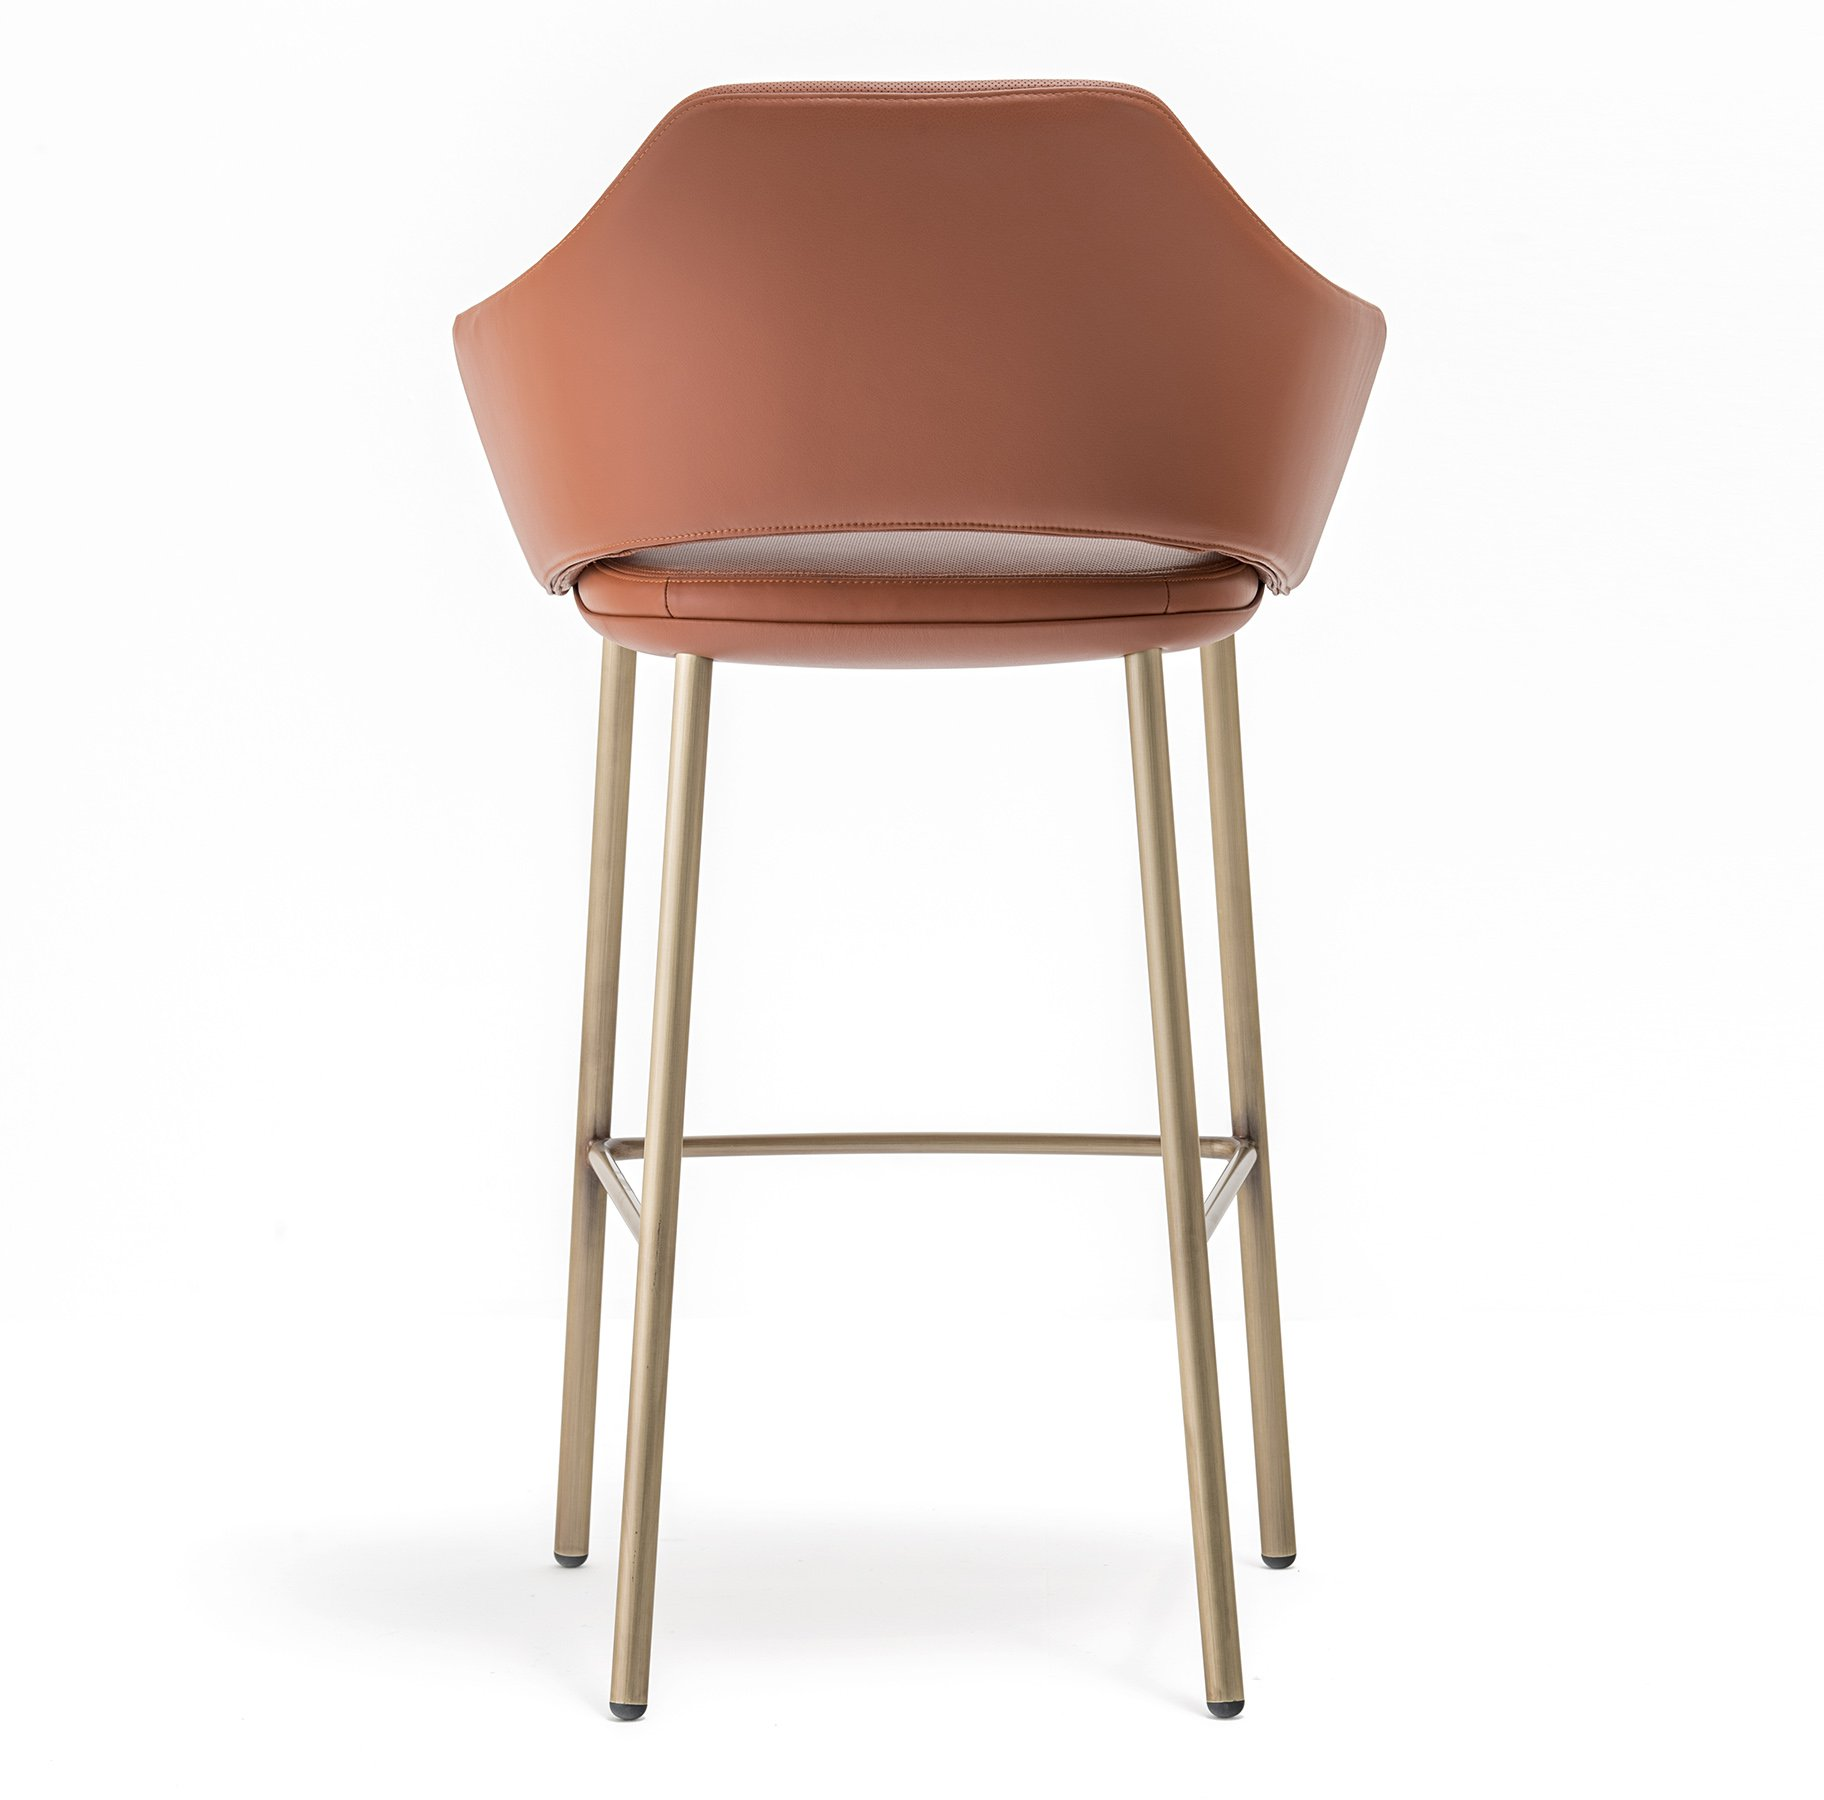 Vic Metal Stool 648 from Pedrali, designed by Patrick Norguet